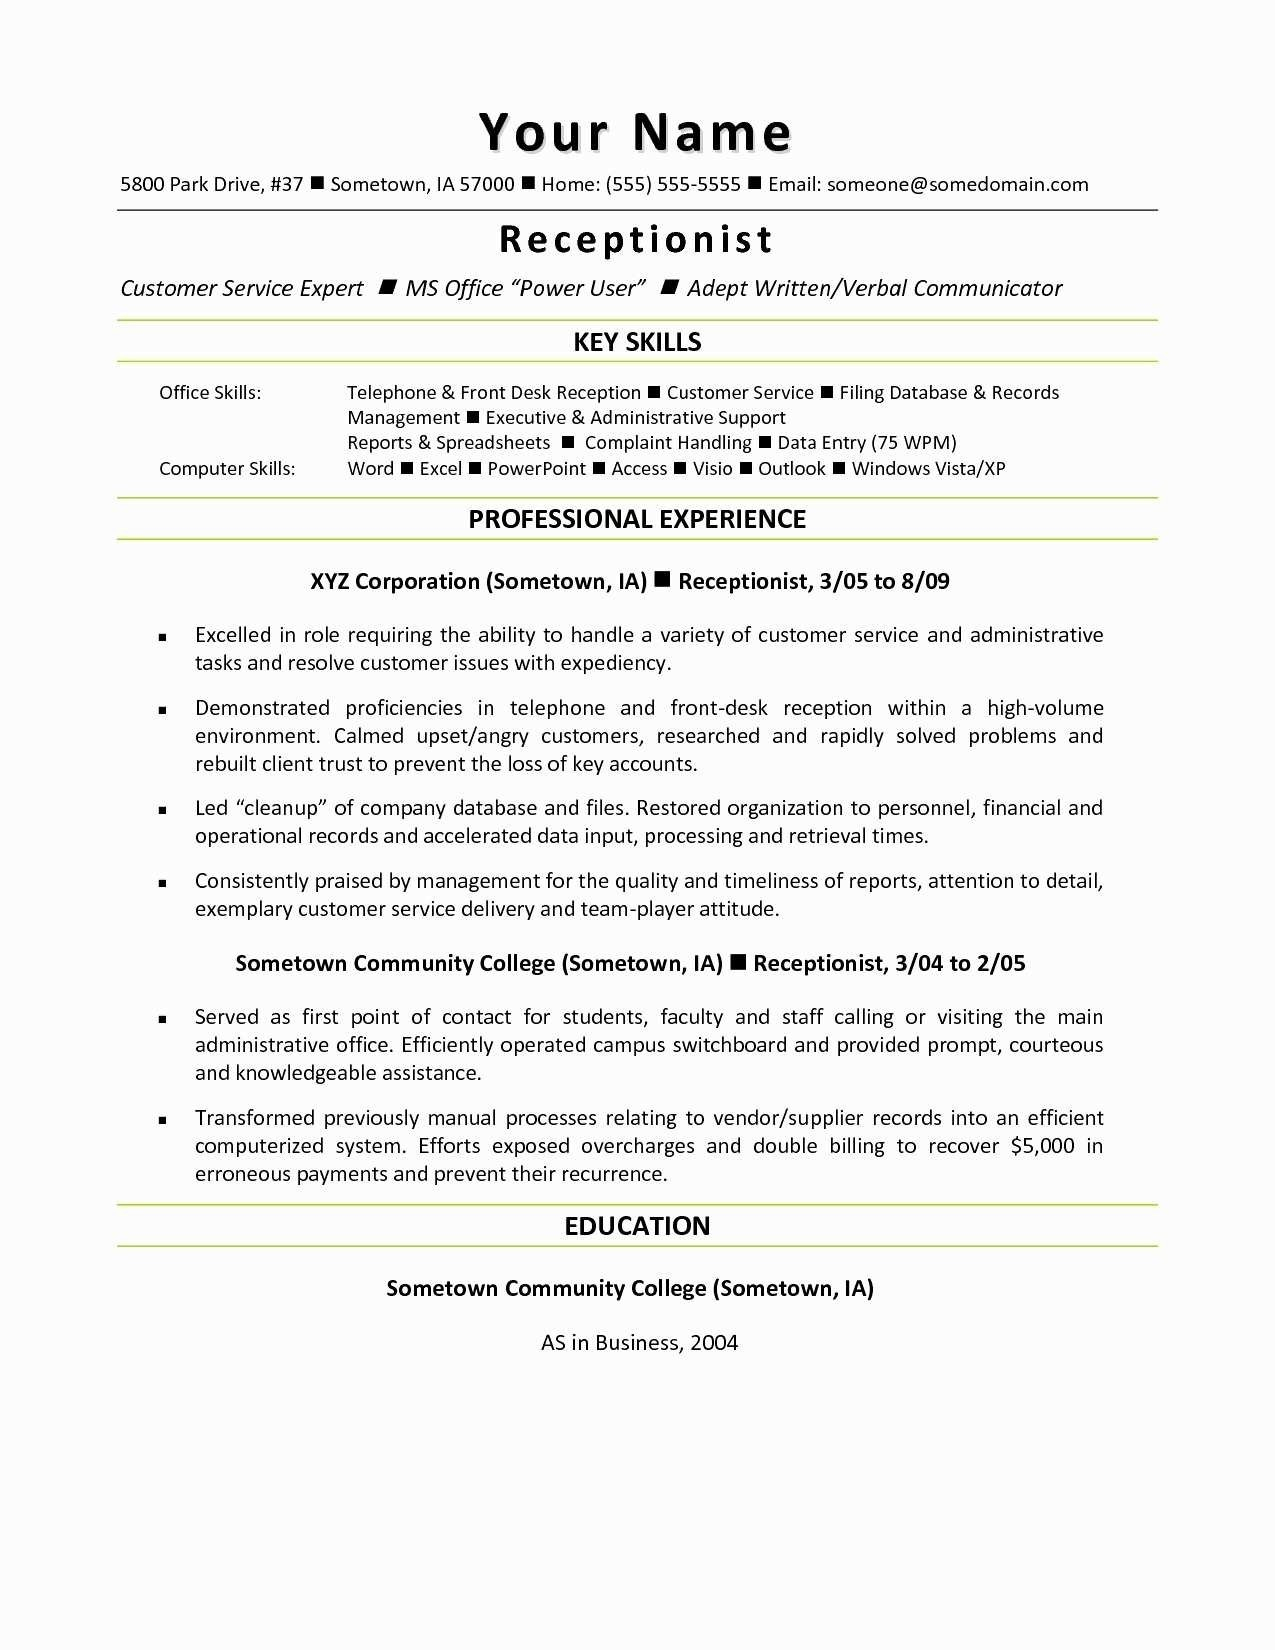 management skills examples for resume example-Management Skills Resume Inspirational Awesome Resume Portfolio Examples Fresh Bsw Resume 0d Skill Set 22 17-o